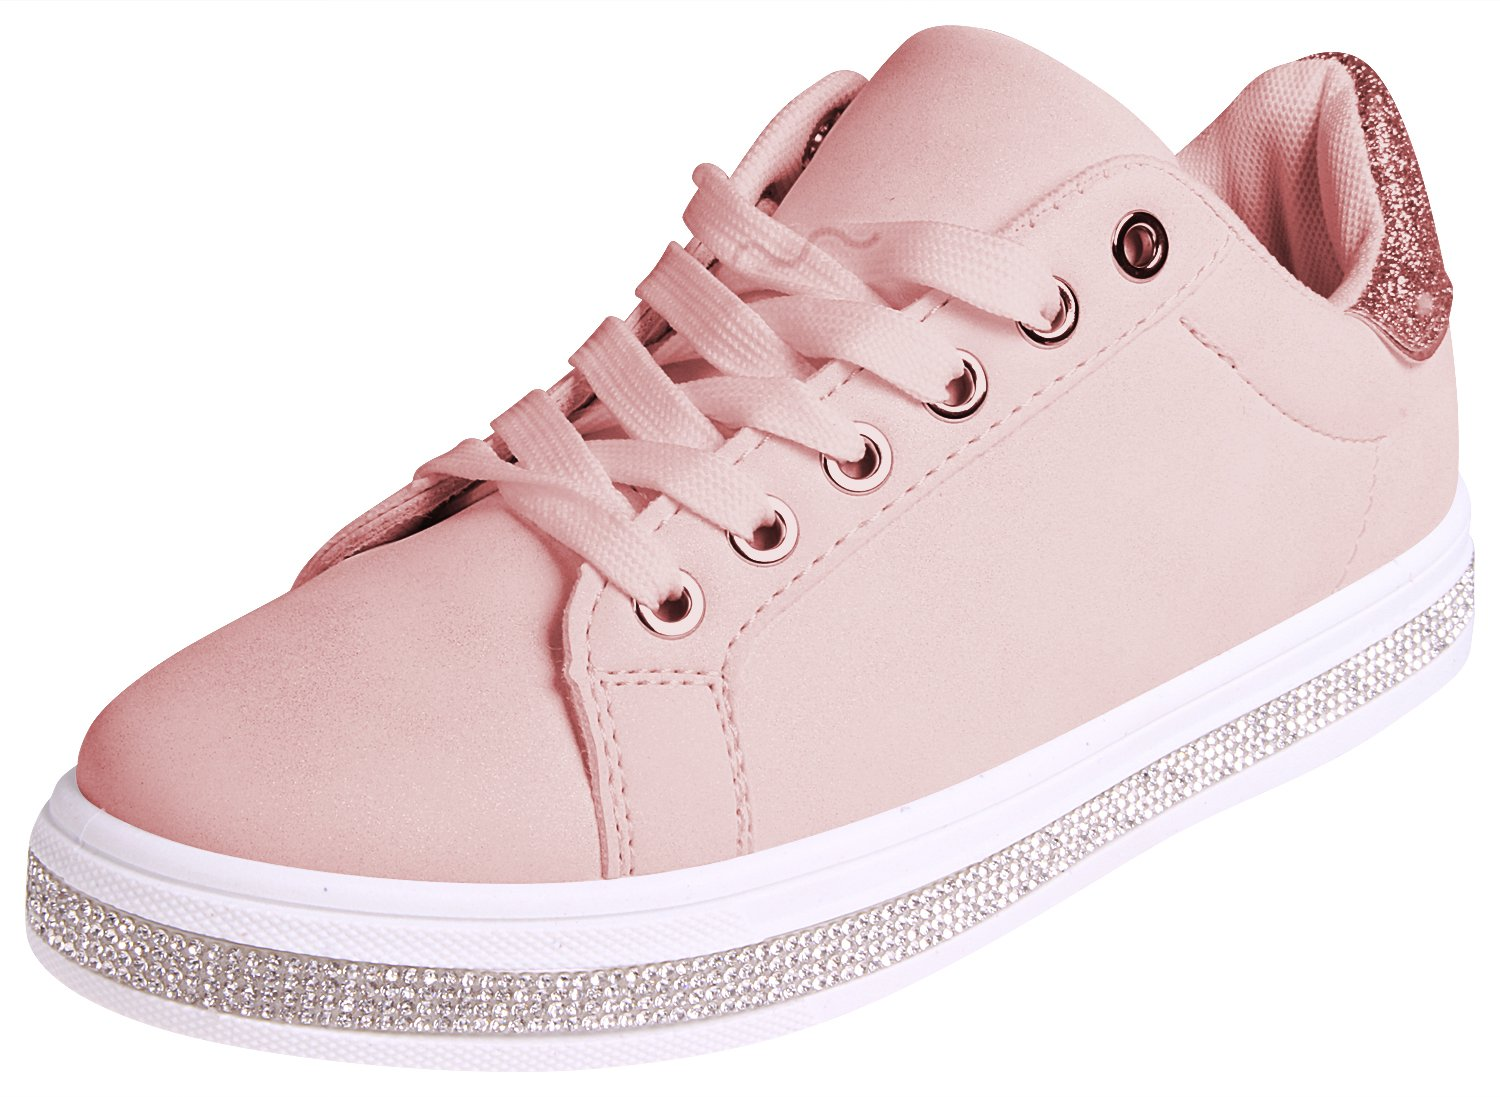 Enimay Womens Glitter Fashion Sneakers Lace up Shoes B07BSPQQX8 5 D(M) US|Pink